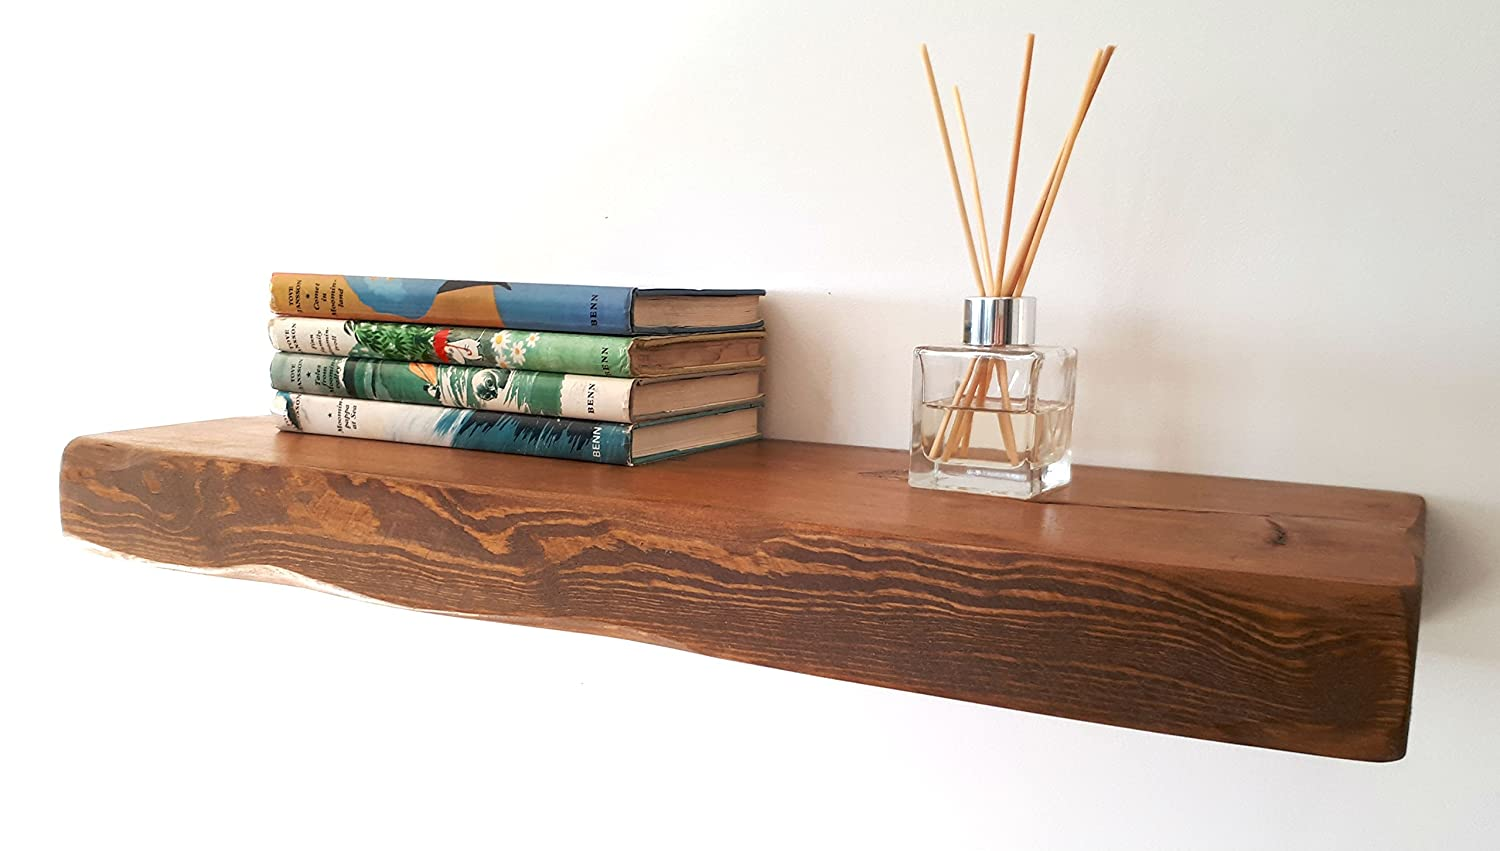 Floating Shelves Reclaimed Solid Wood Rustic Wall Shelf In Medium Oak  Finish 5 Ft Long - Perfect For Living Room, Kitchen, Bathroom, Office